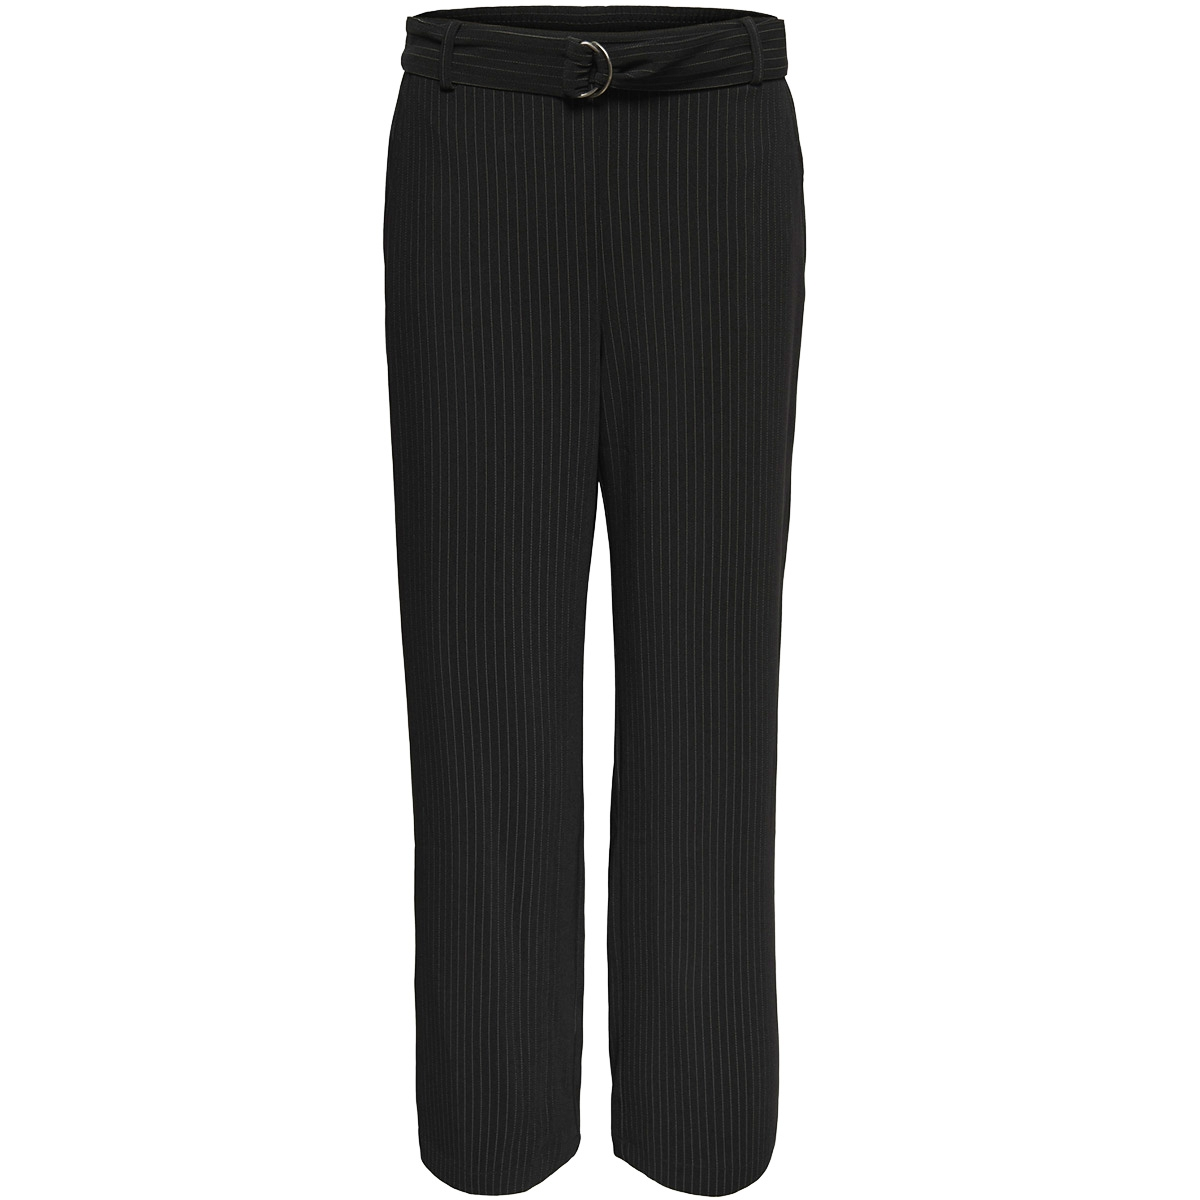 jdychung pant new wvn 15169444 jacqueline de yong broek black/cloud dancer